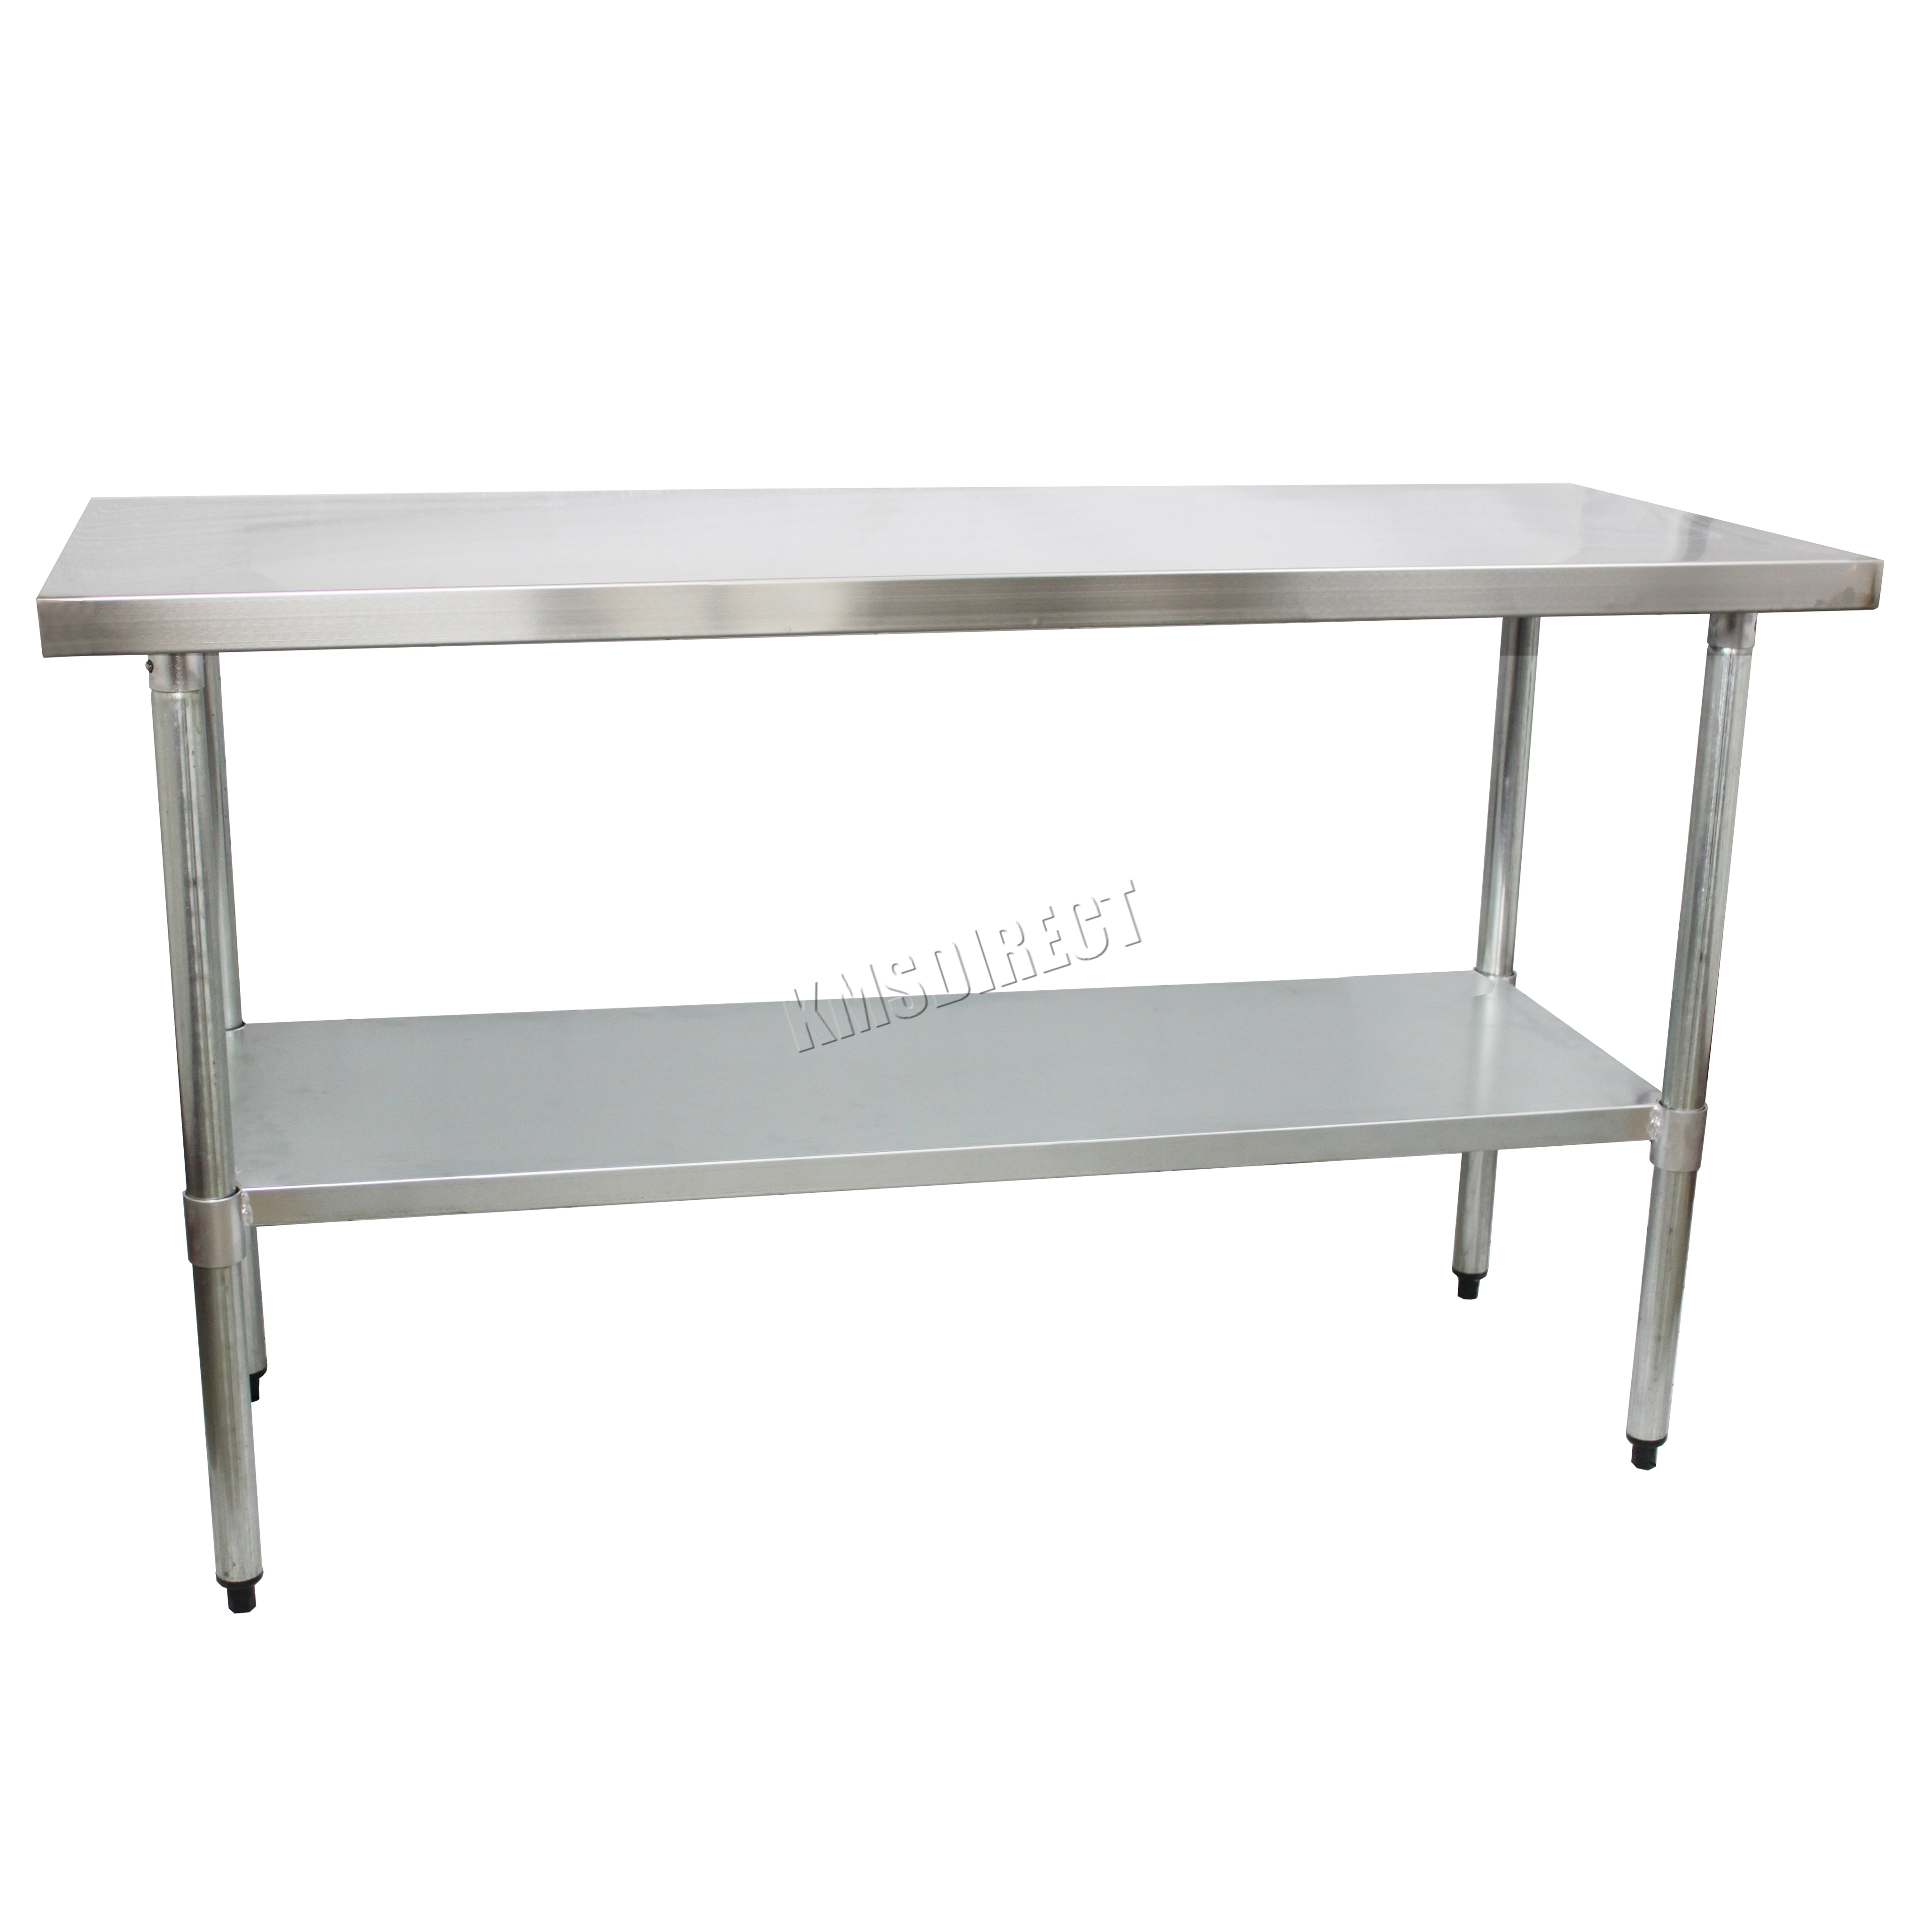 Westwood Stainless Steel Commercial Catering Table Work